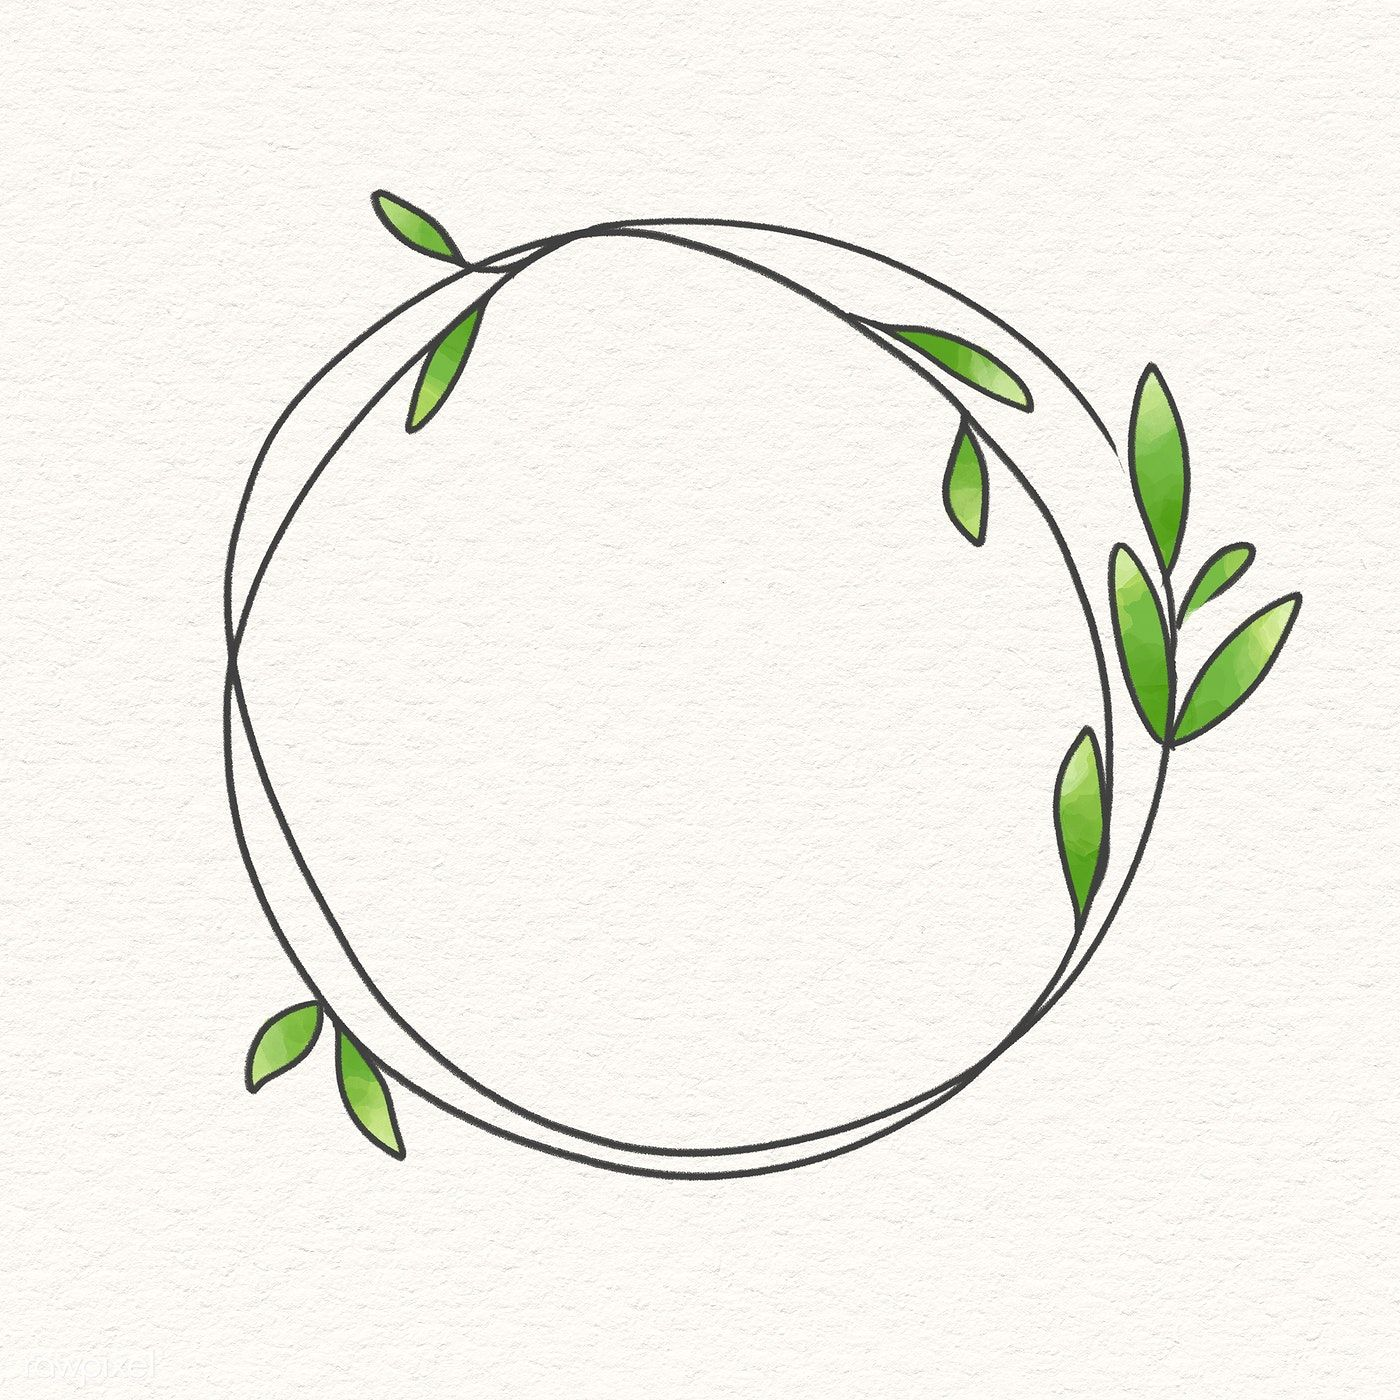 Photo of Download premium illustration of Doodle wreath frame on beige background